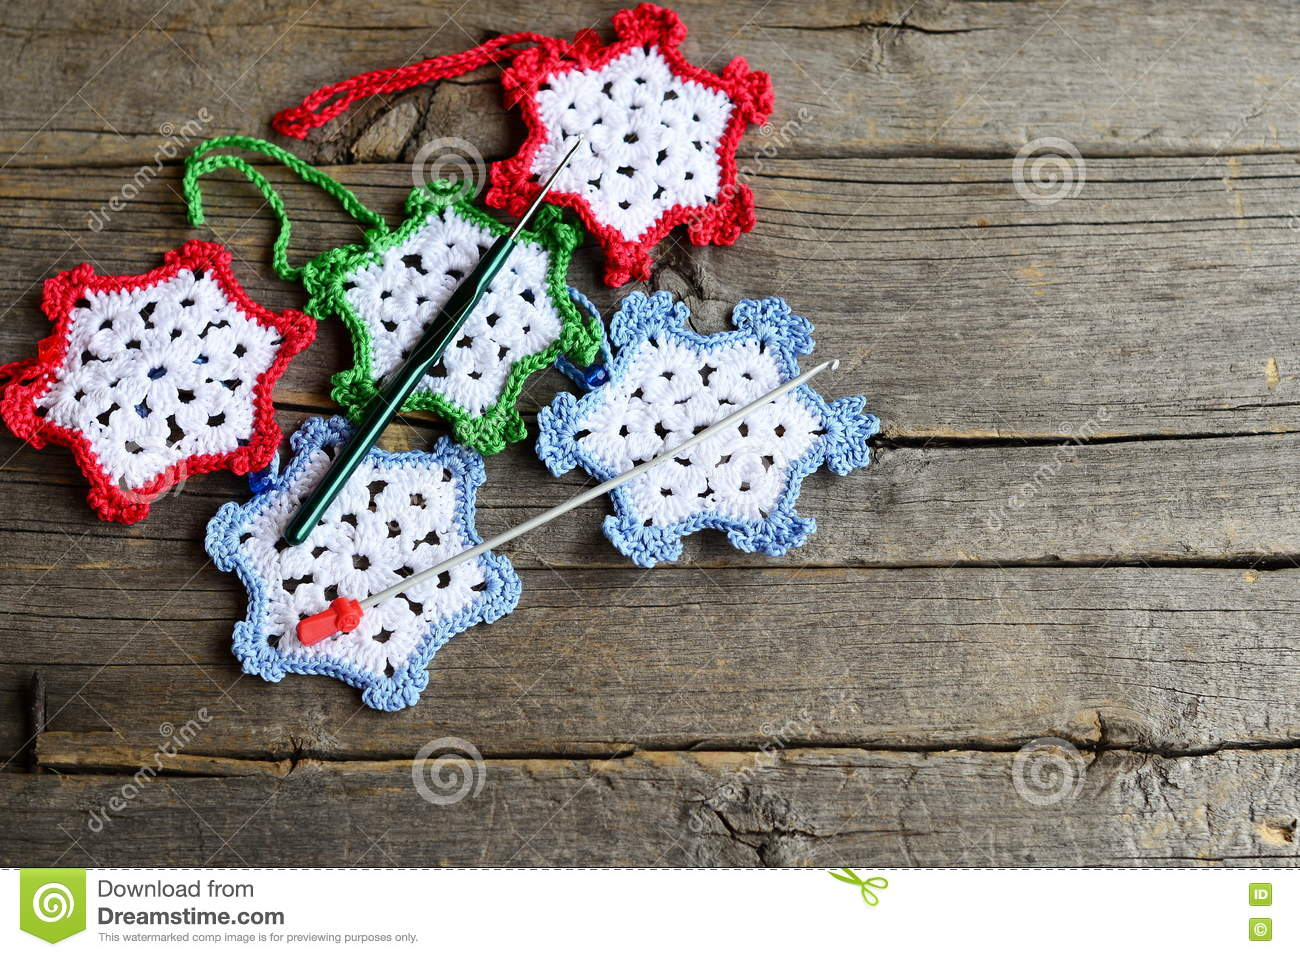 Snowflakes crocheted from cotton yarn, two hooks on an old wooden background with copy space for text. Easy winter crafts